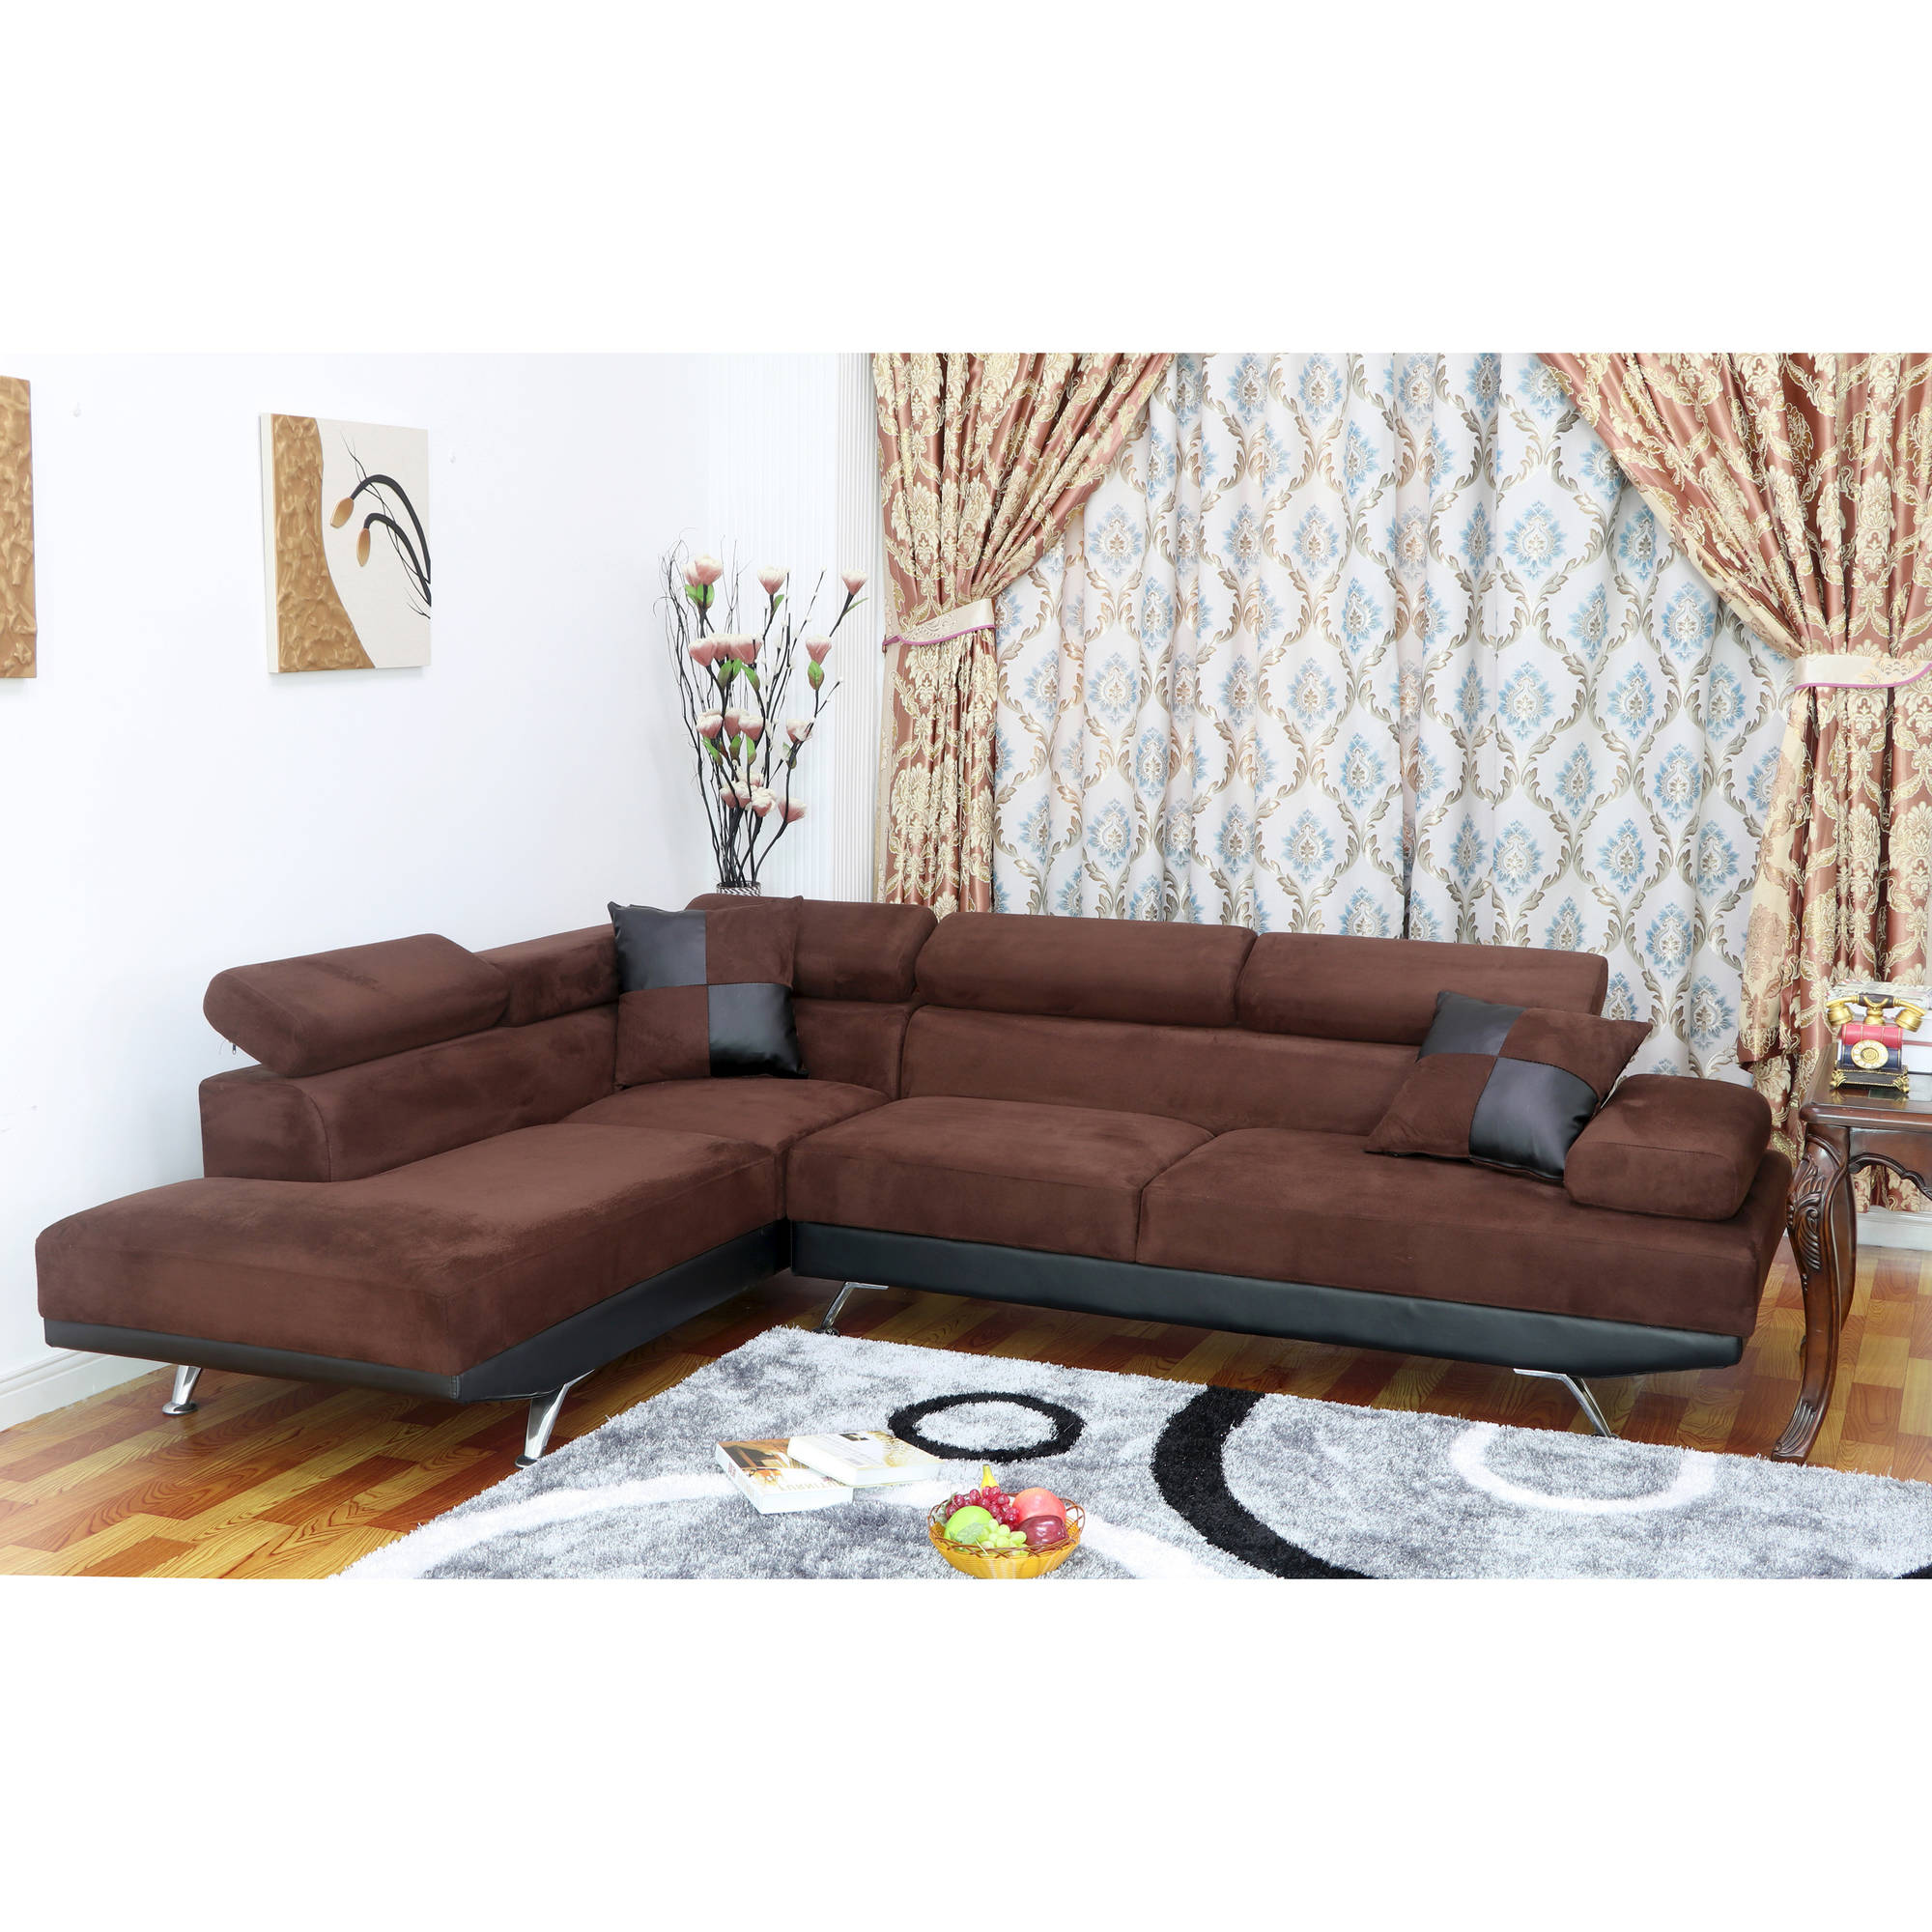 UFE Sofia 2-Piece Dark Brown Microfiber Modern Living Room Left Facing Chaise Sectional Sofa  sc 1 st  Walmart : dark brown sectional sofa - Sectionals, Sofas & Couches